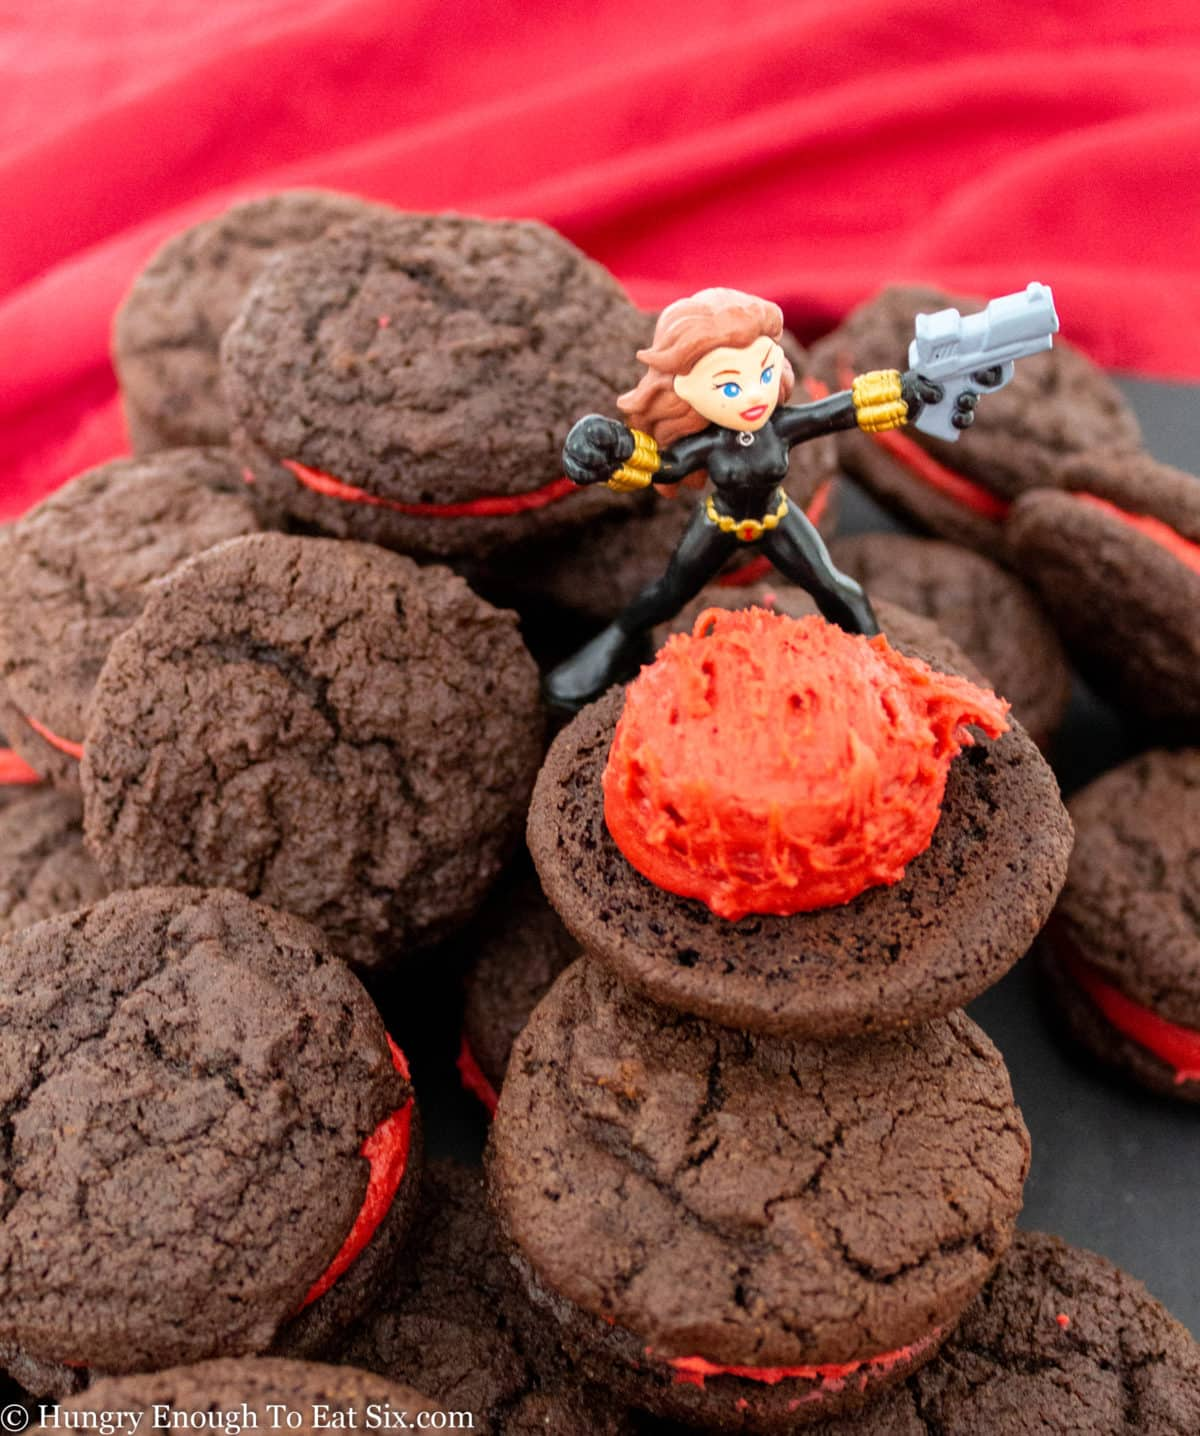 Chocolate cookies with a scoop of red frosting